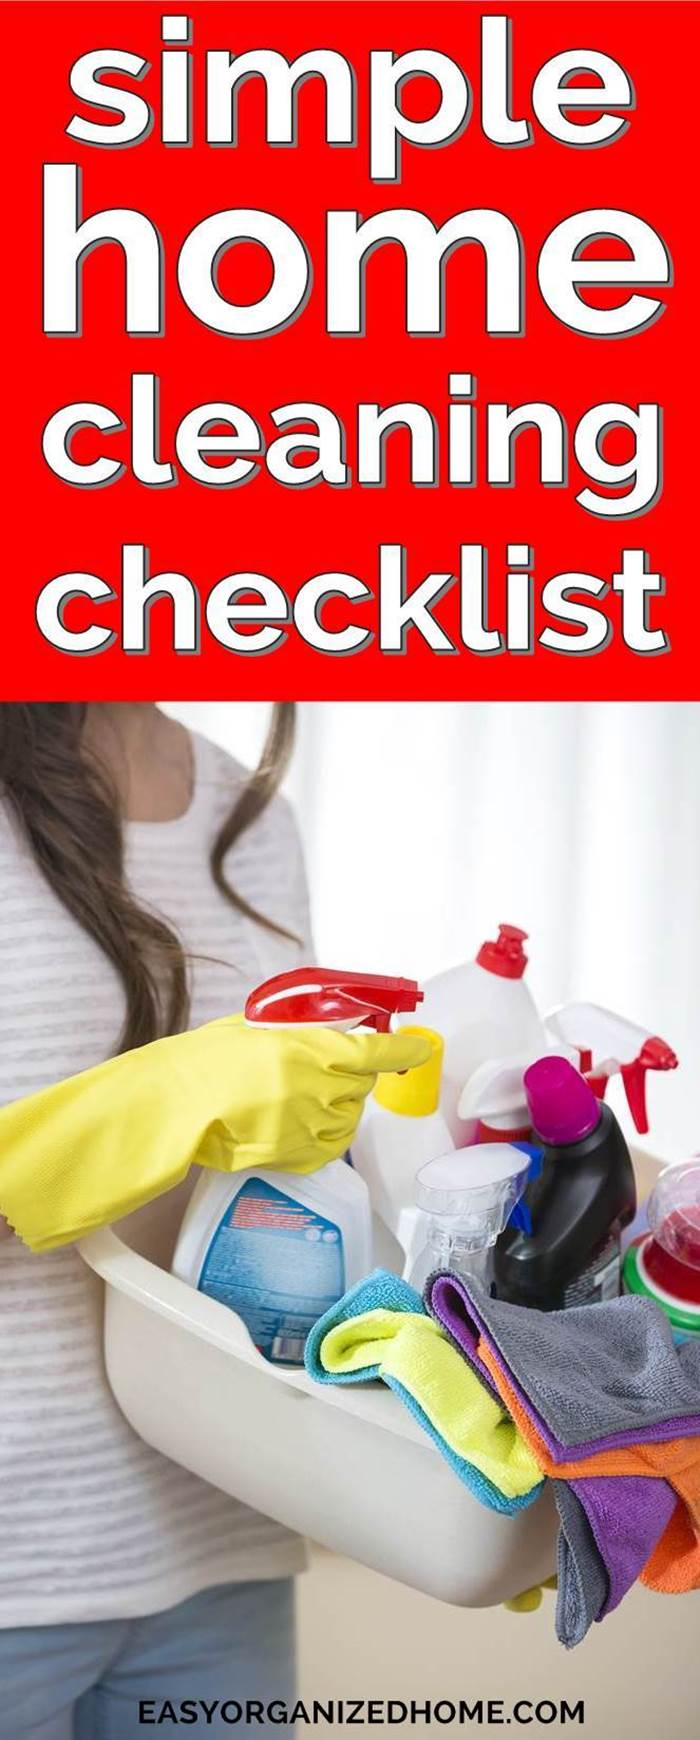 Simple home cleaning schedule and checklist to help you spring clean your house #cleaning #cleaningtips #cleaninghacks #cleaningtricks #housecleaning #housecleaningtips #housekeeping #springcleaning #springclean